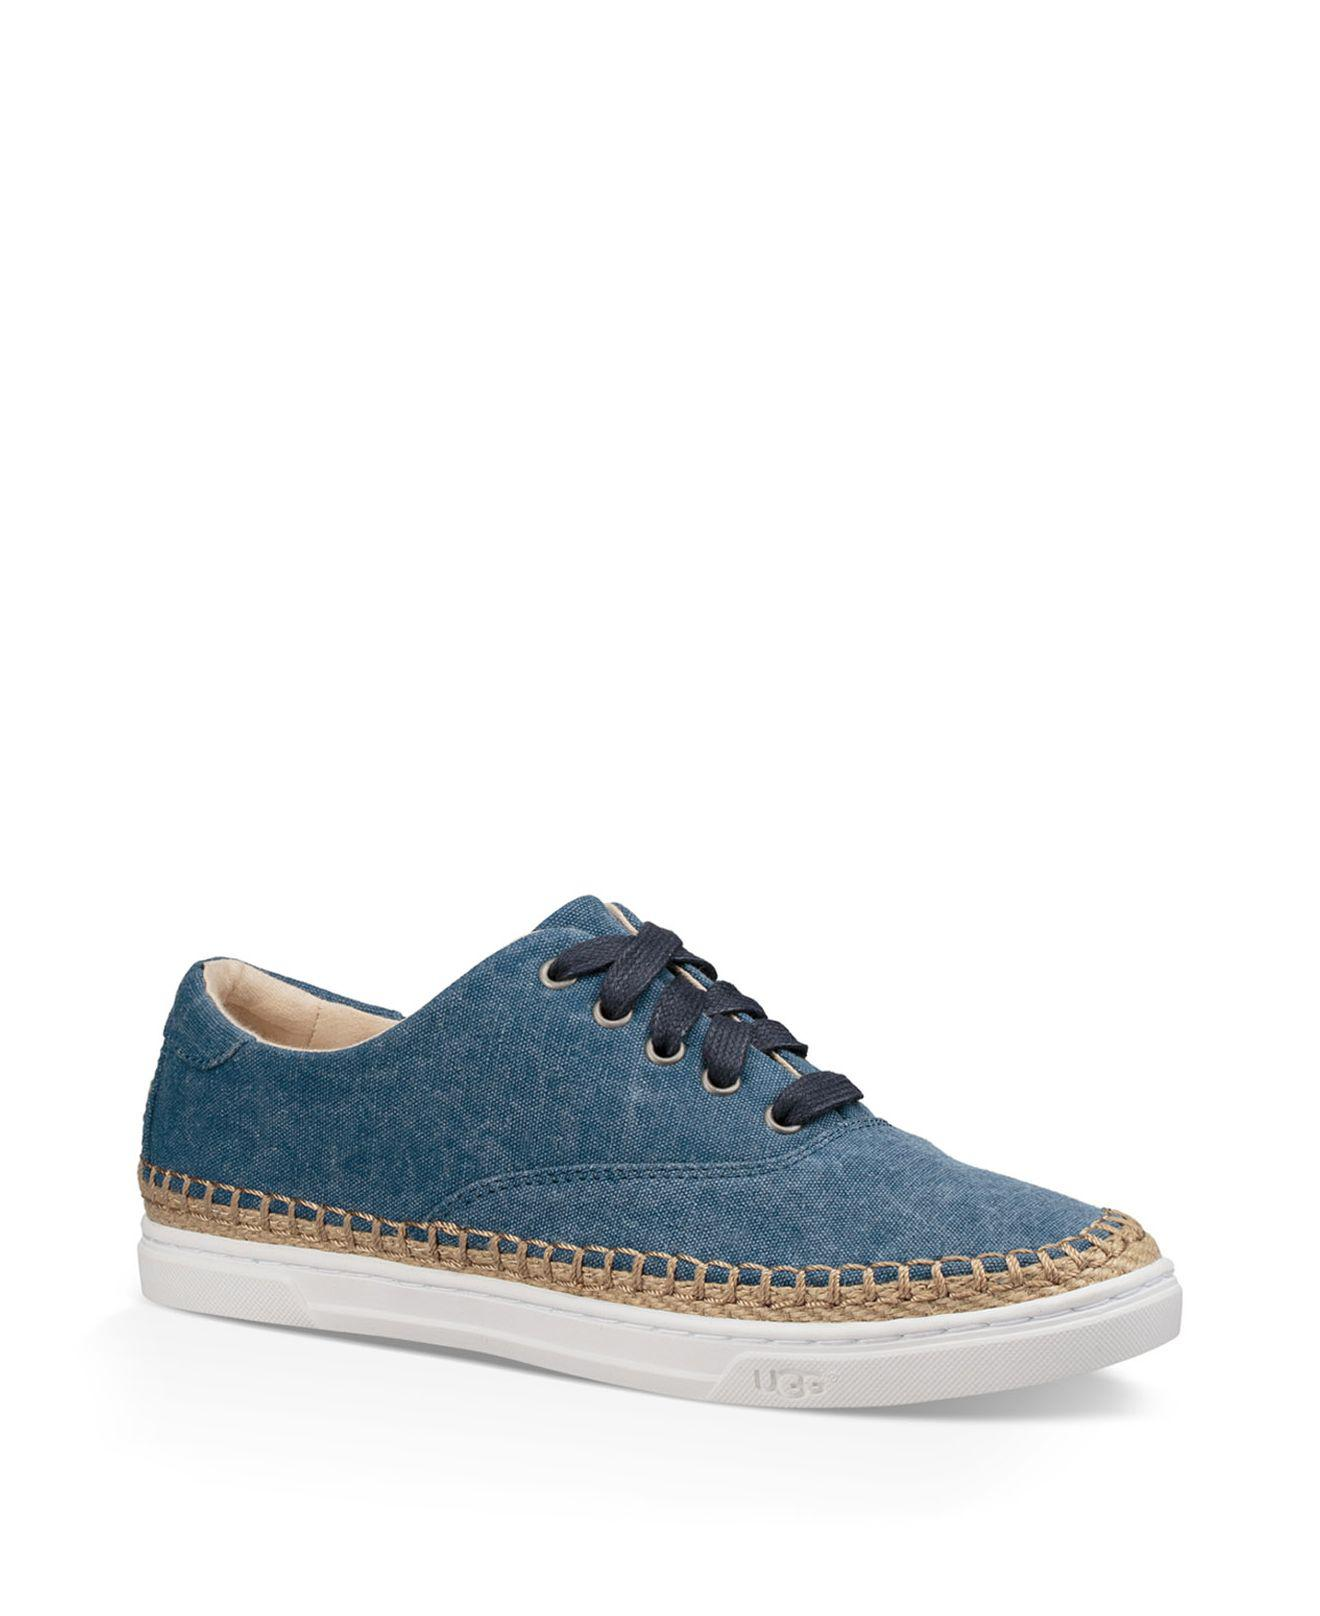 9161144b074 Lyst - Ugg Eyan Canvas Lace-up Sneakers in Blue